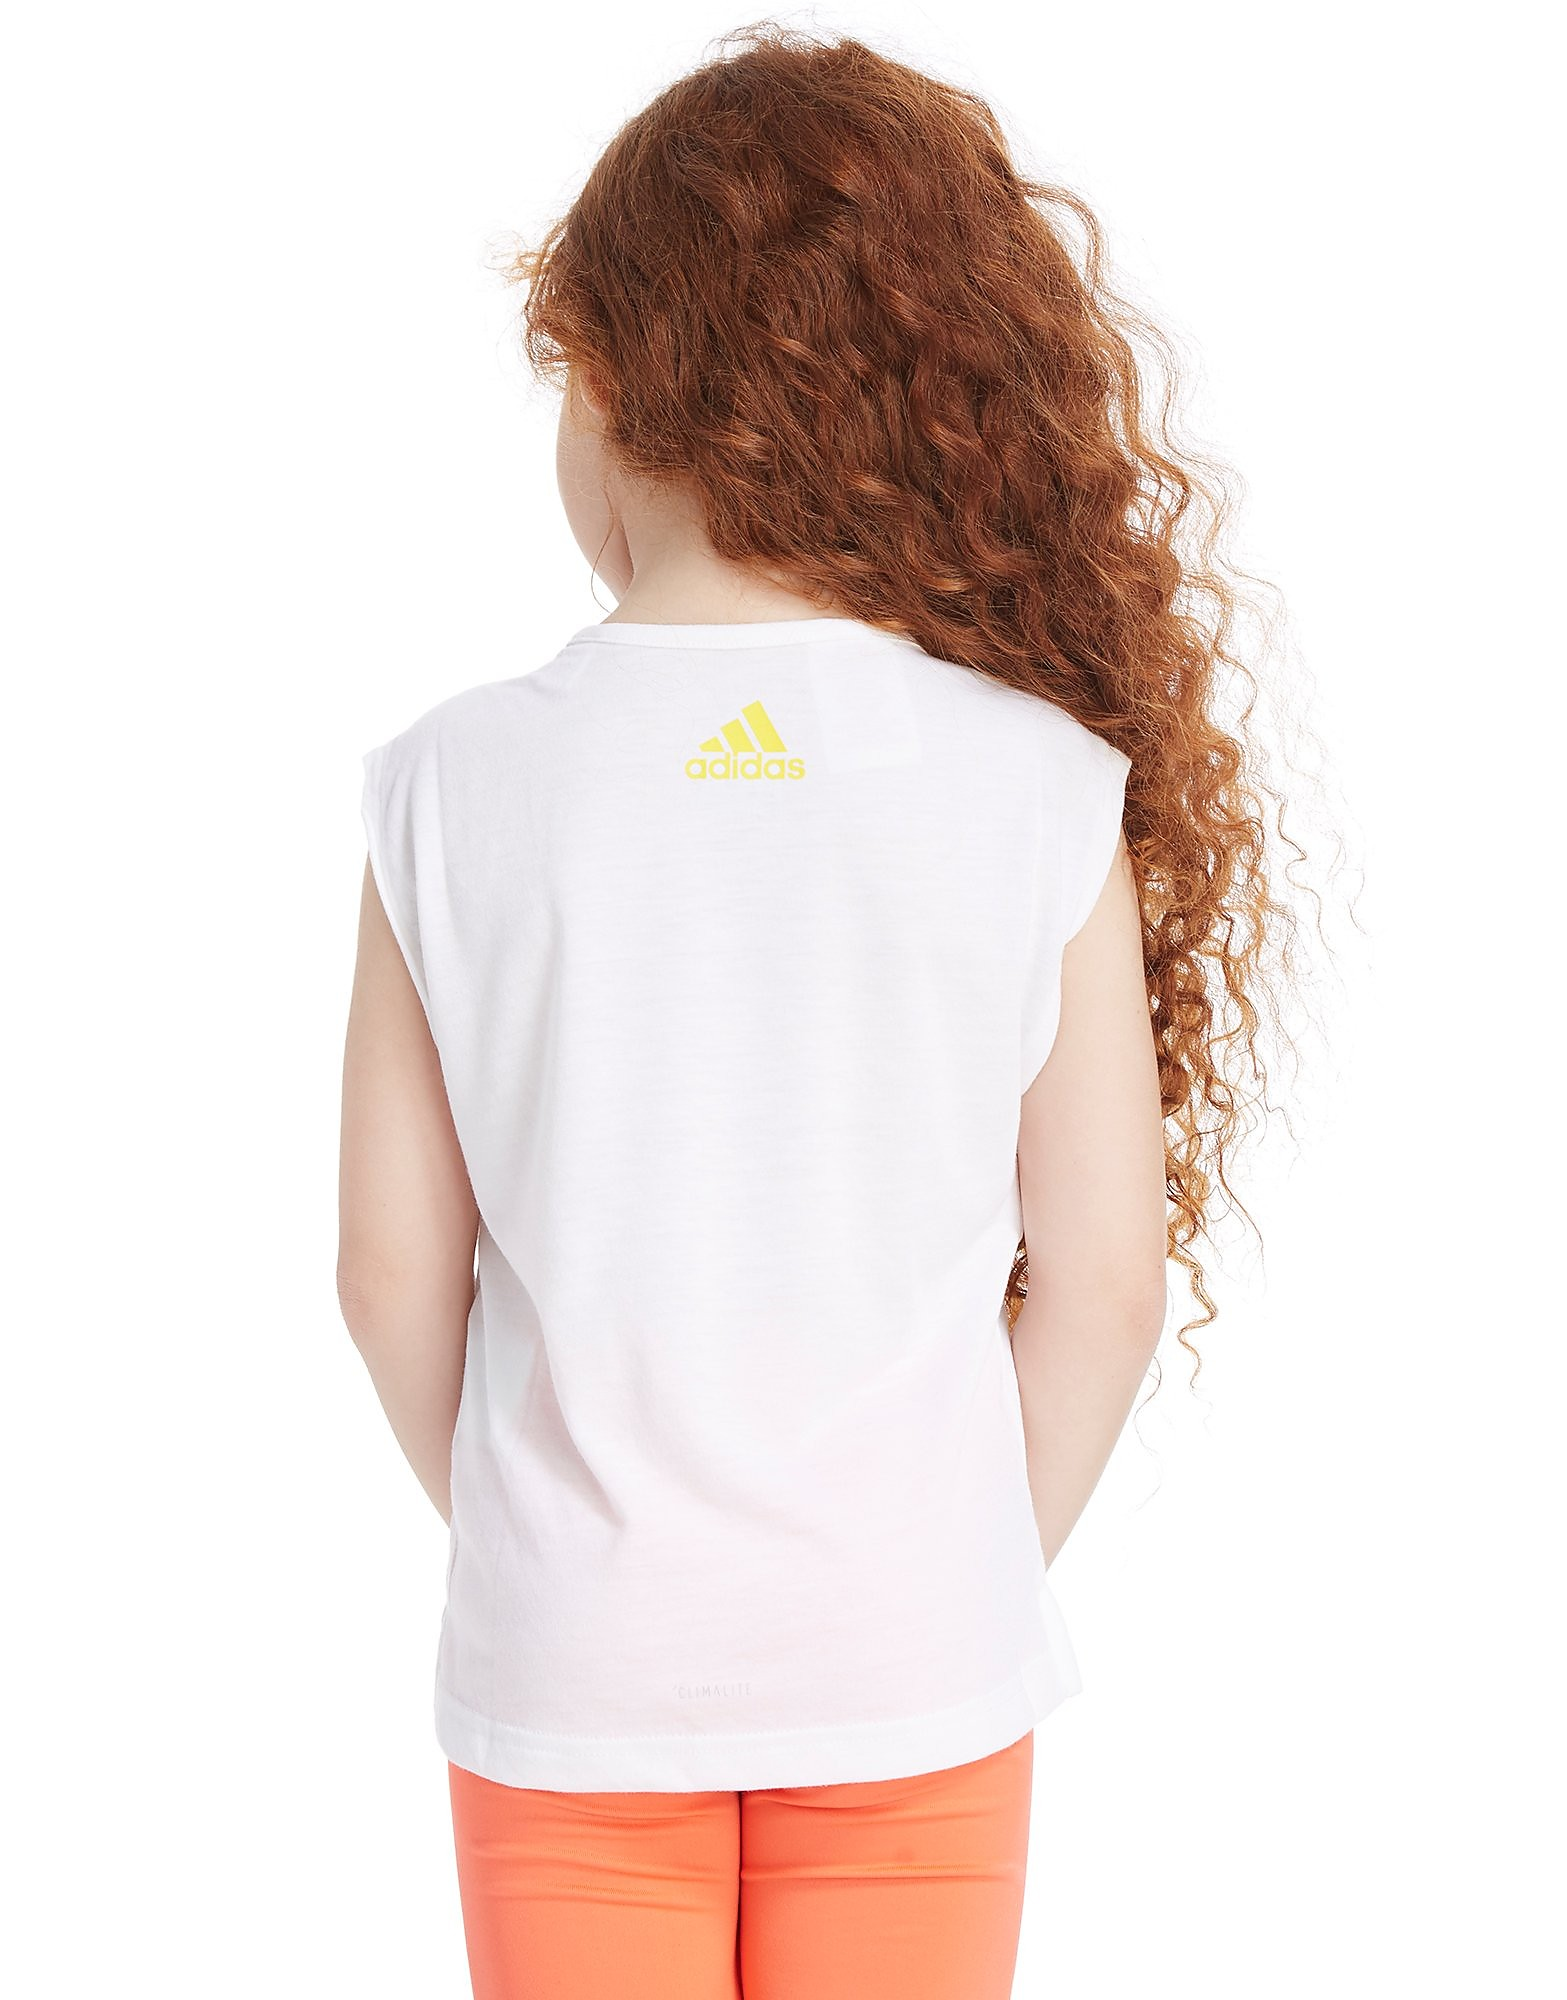 adidas Girls' Print Sleeveless T-Shirt Children